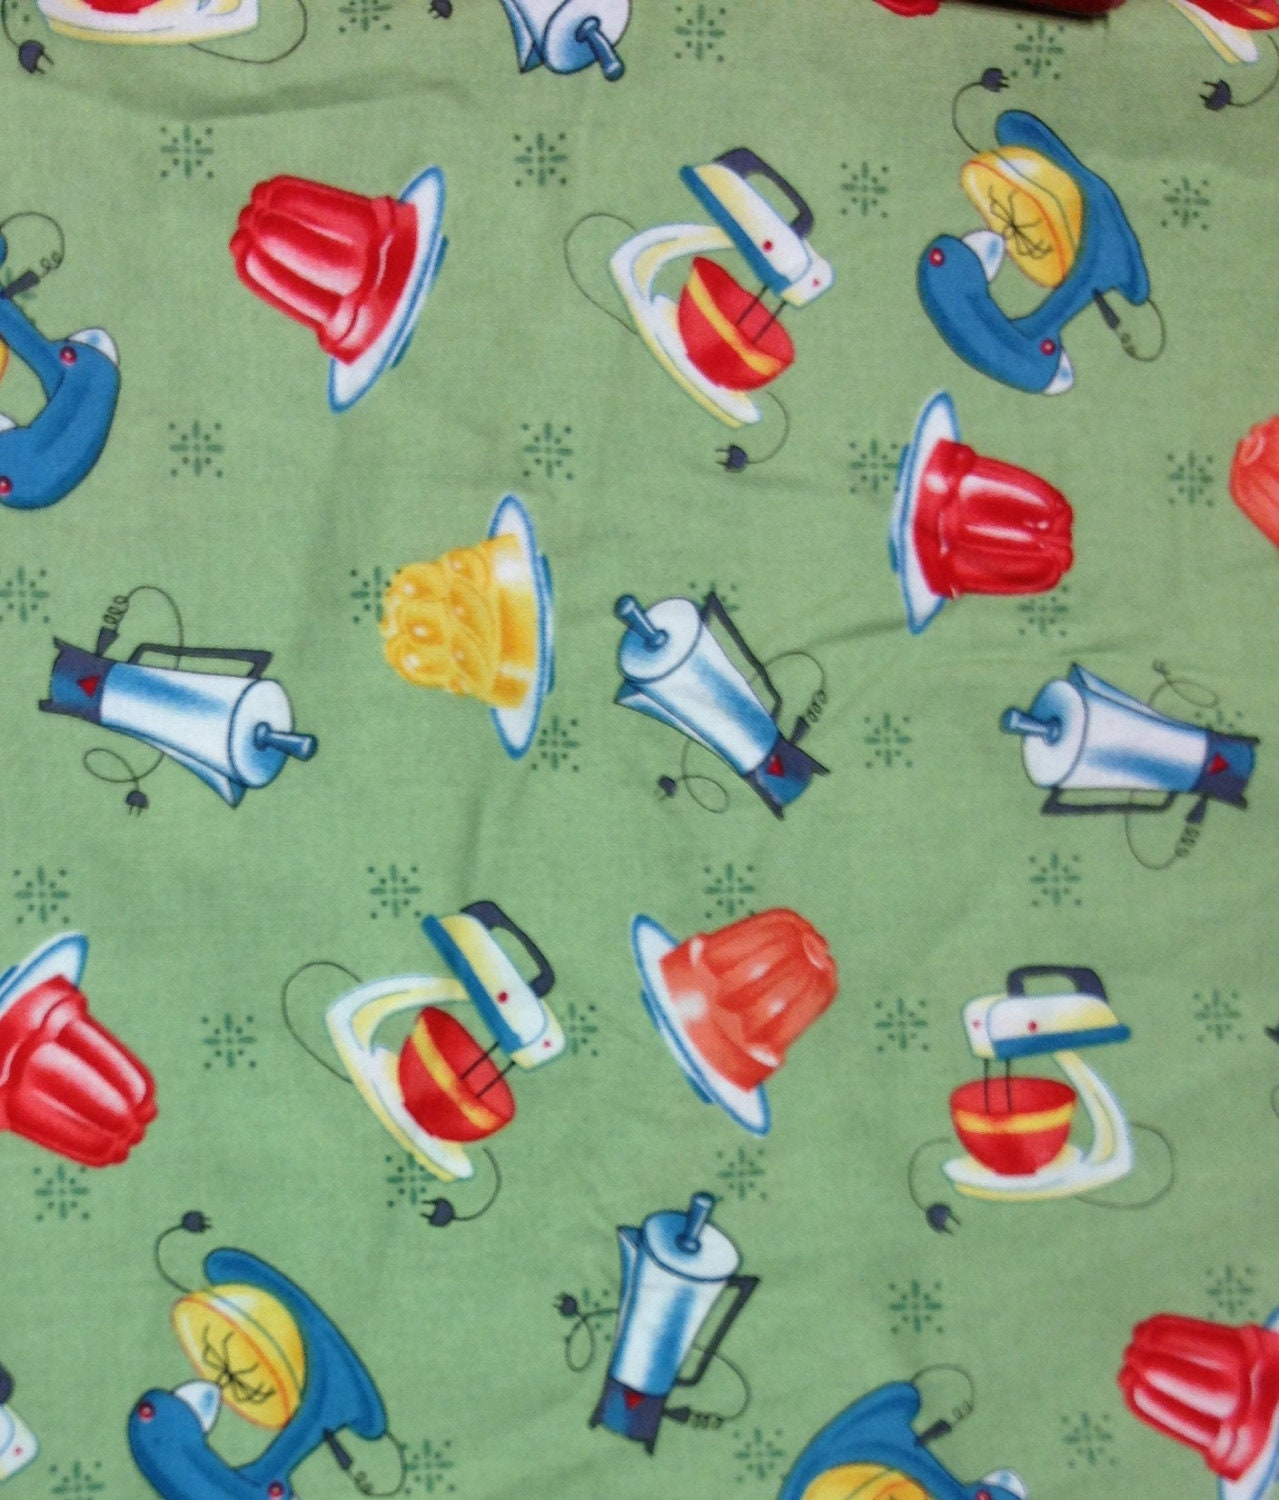 Retro 1950's Style Printed Kitchen Appliances Fabric By